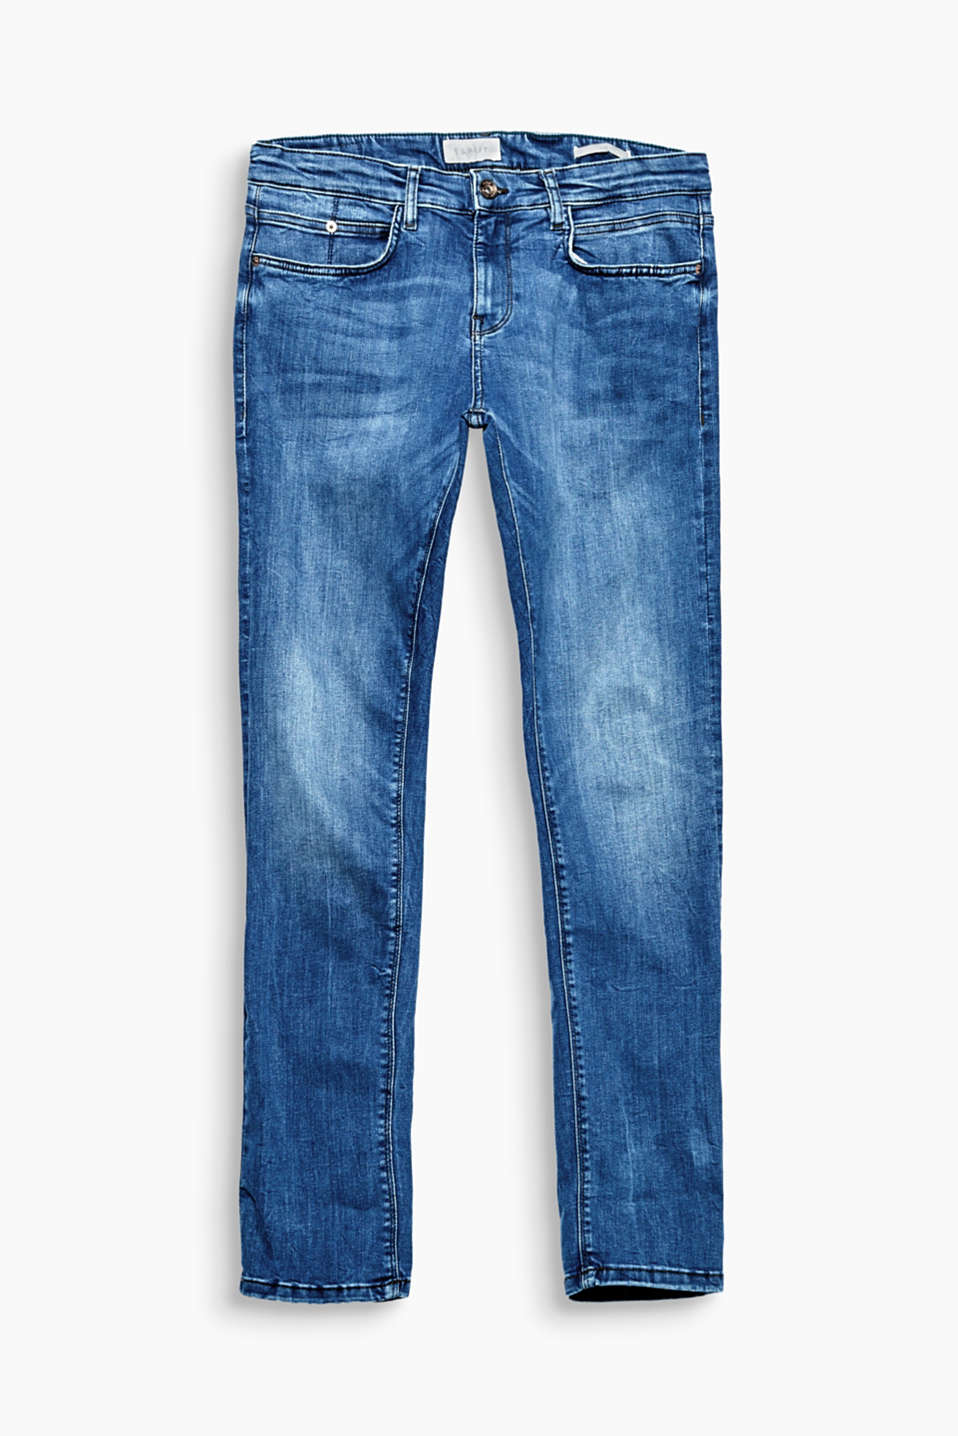 Dynamic denim comfort! The sleek wash and skinny cut make these jeans an everyday fave!